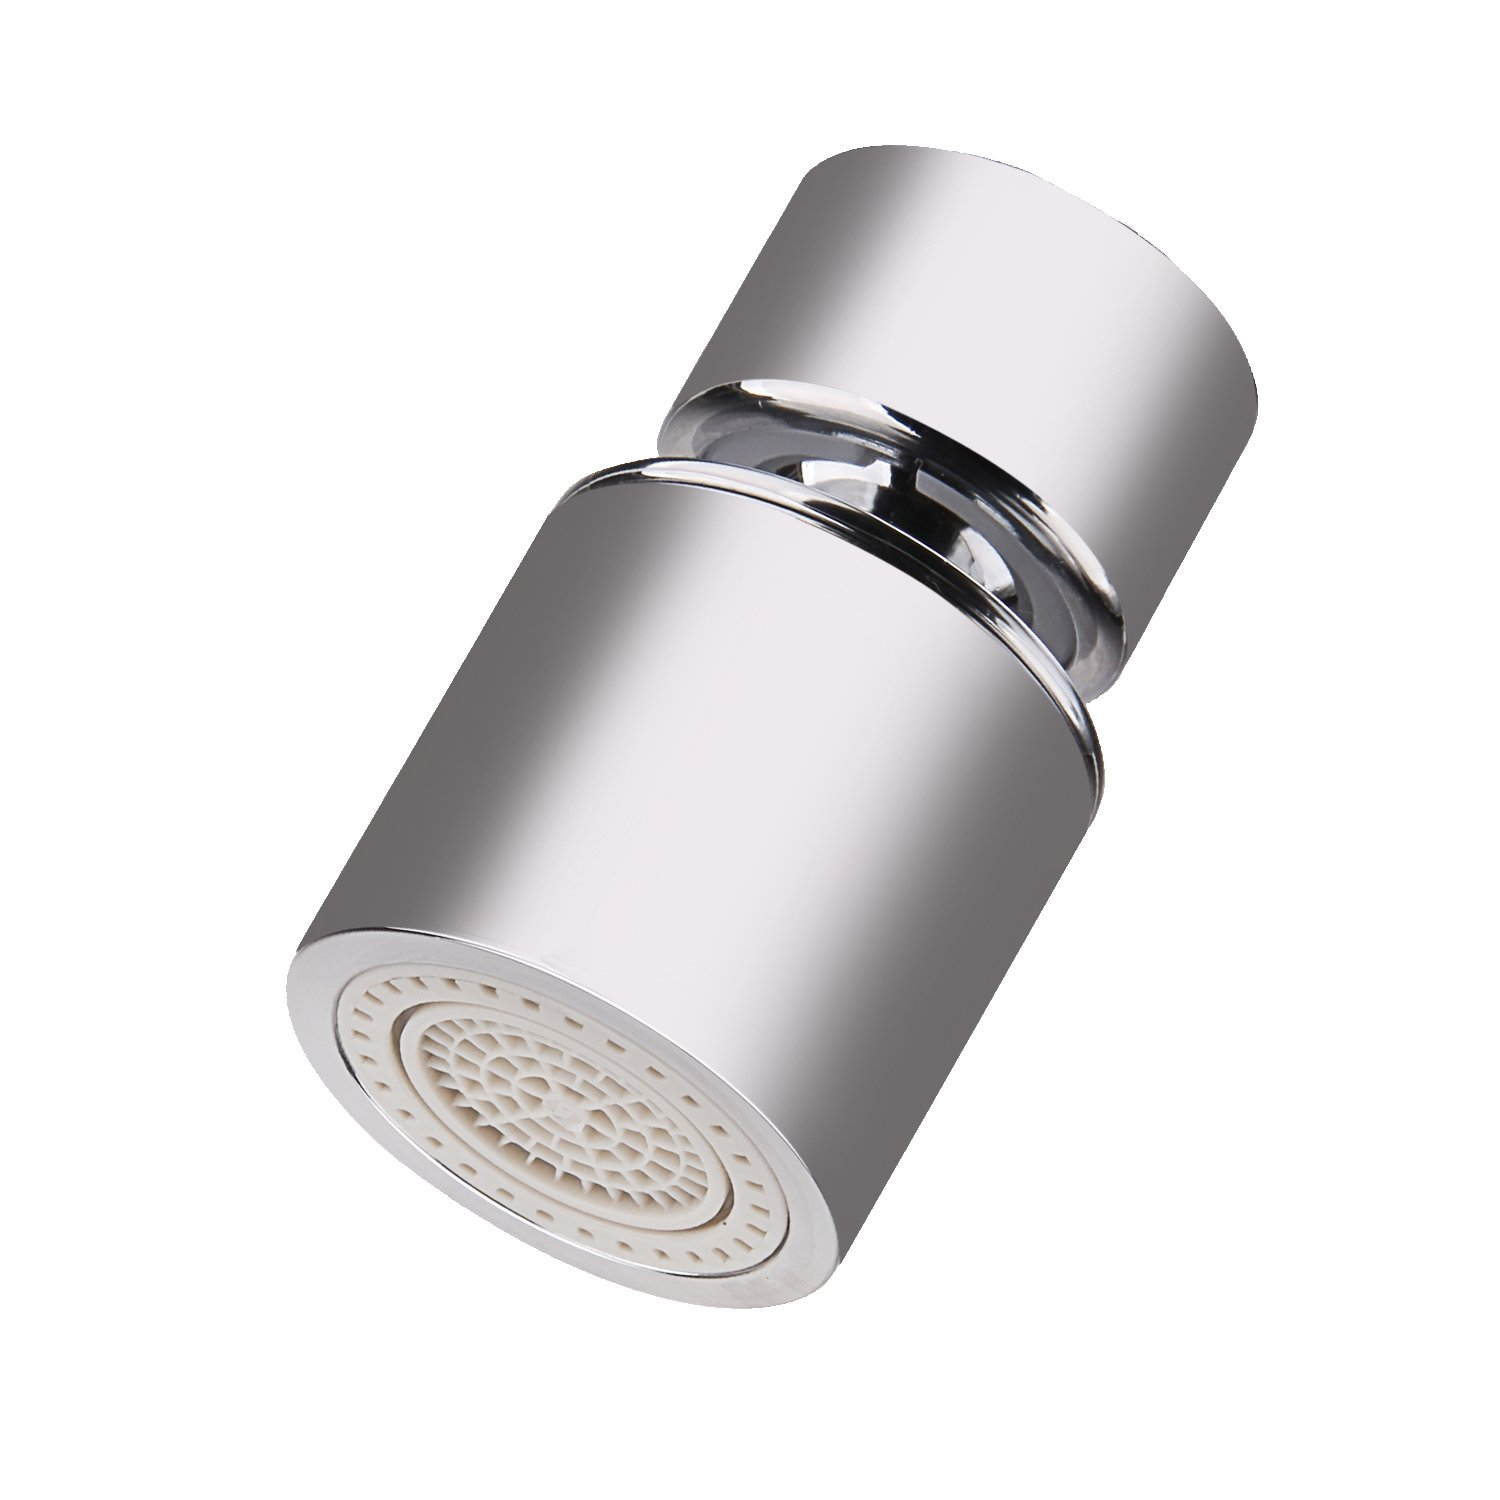 Enchanting How To Remove Kohler Faucet Aerator Pictures - Best ...